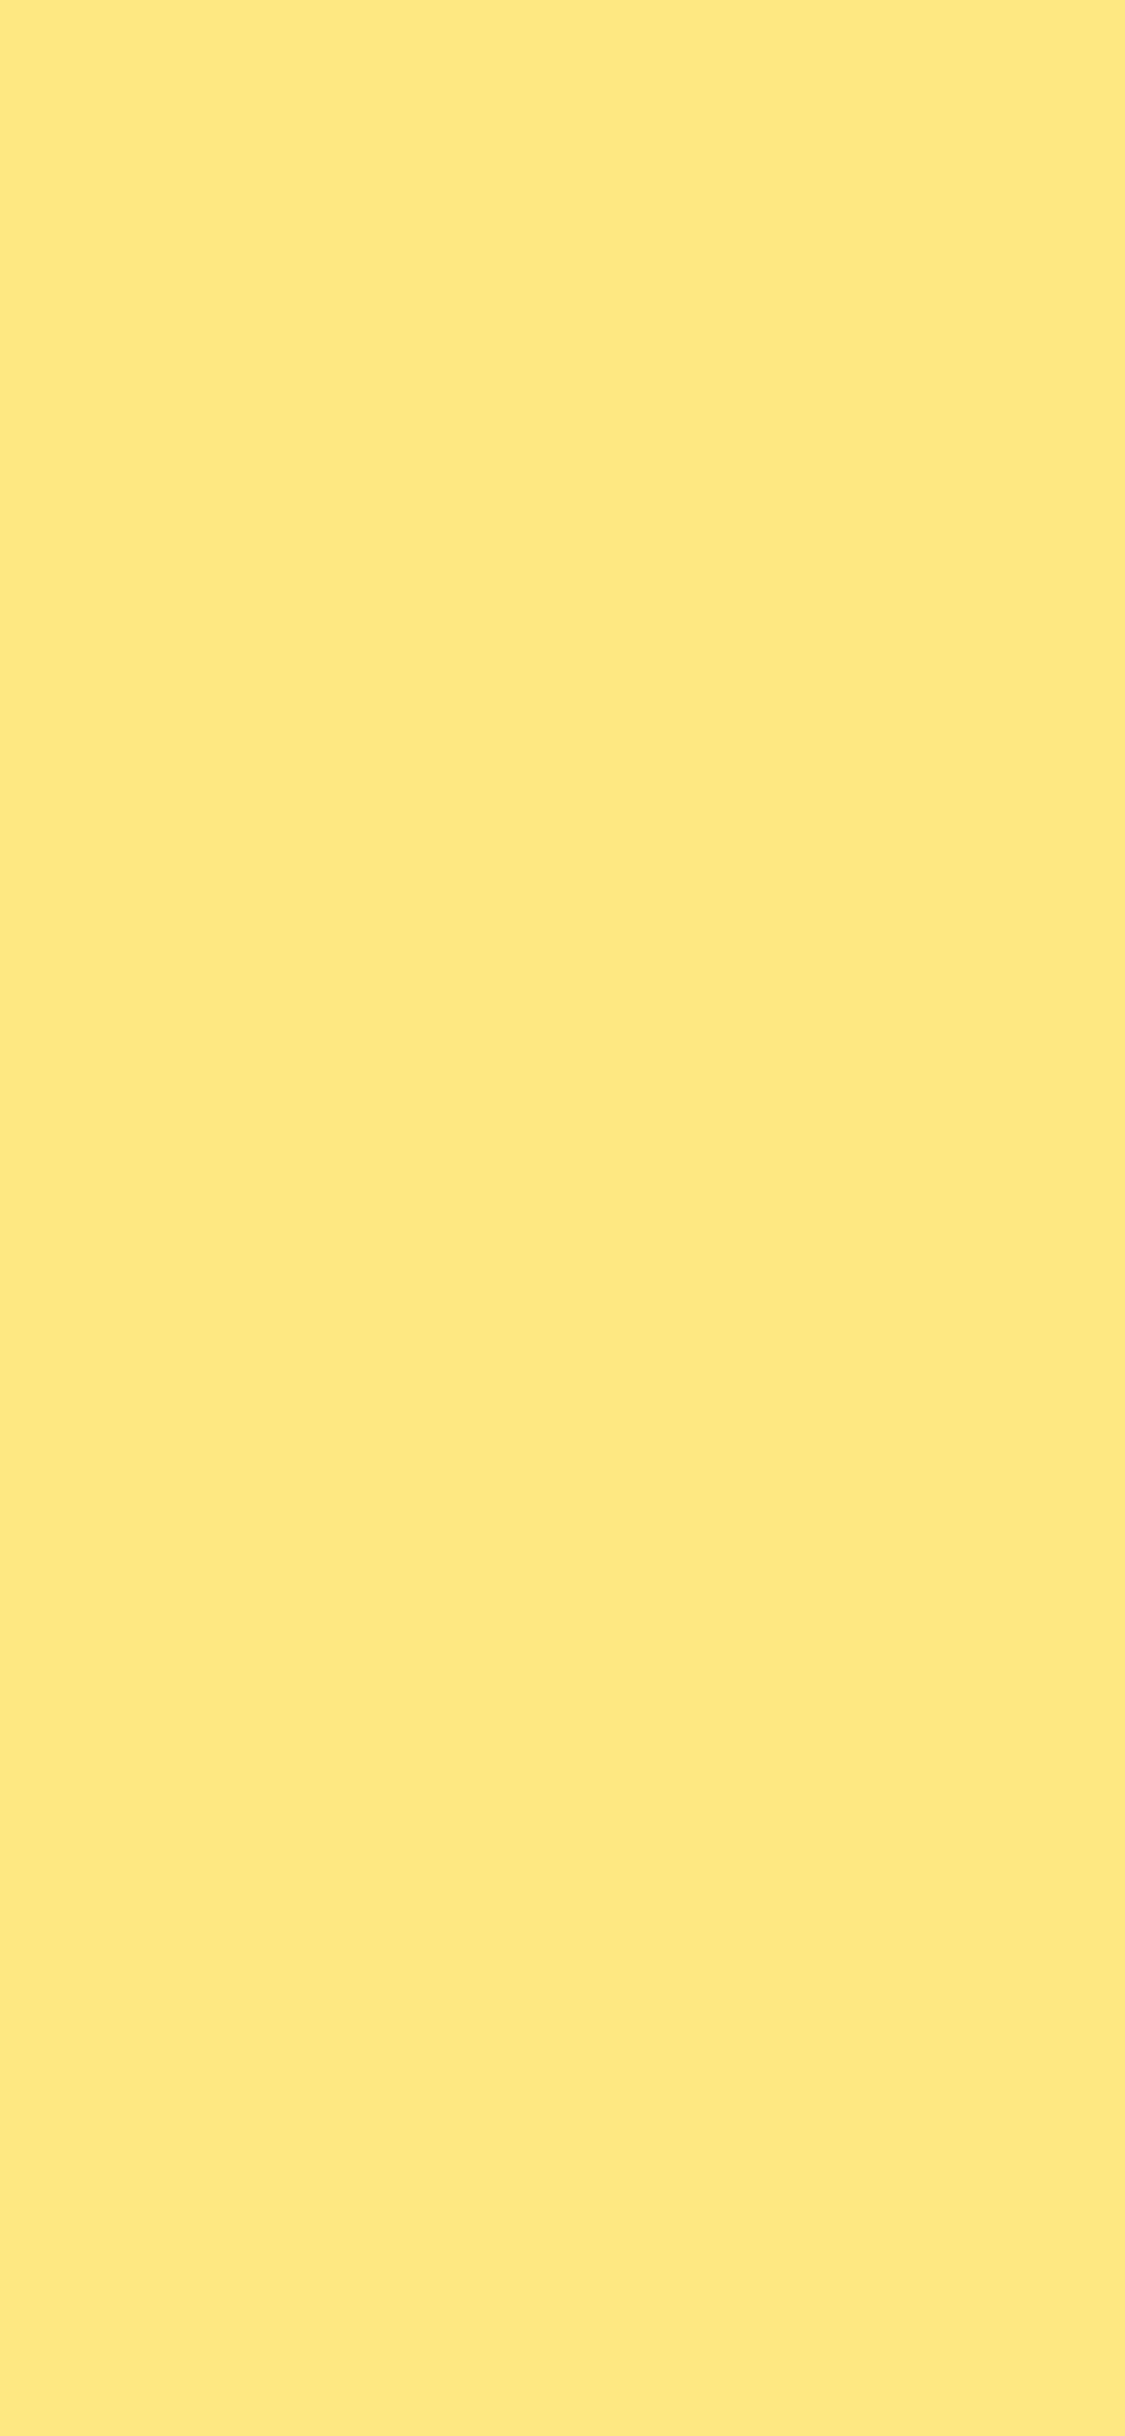 1125x2436 Yellow Crayola Solid Color Background